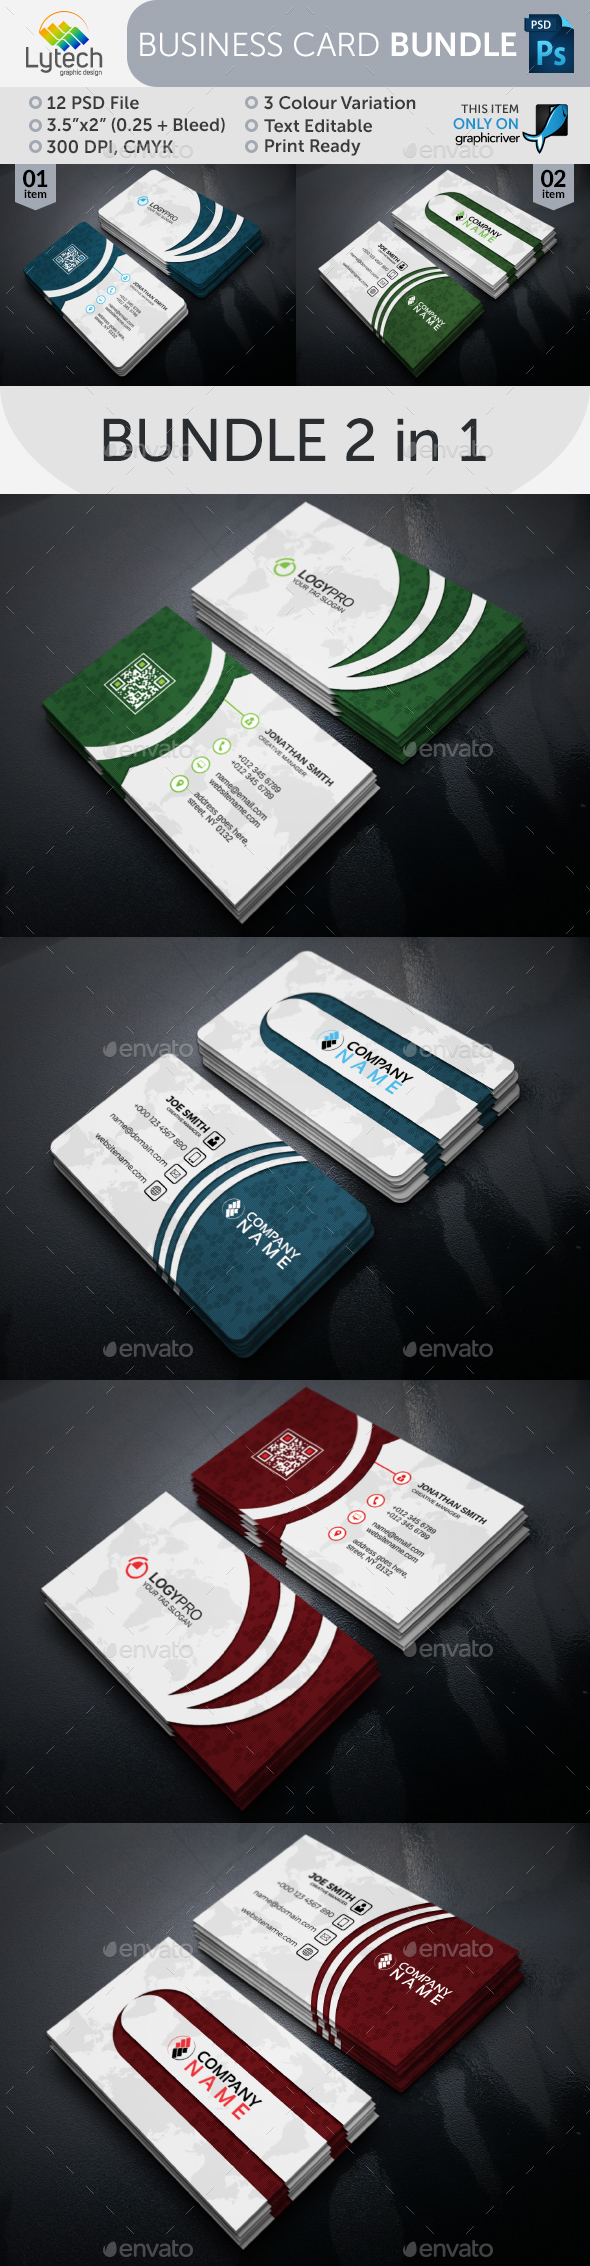 Creative Business Card Bundle (2 in 1) - Business Cards Print Templates